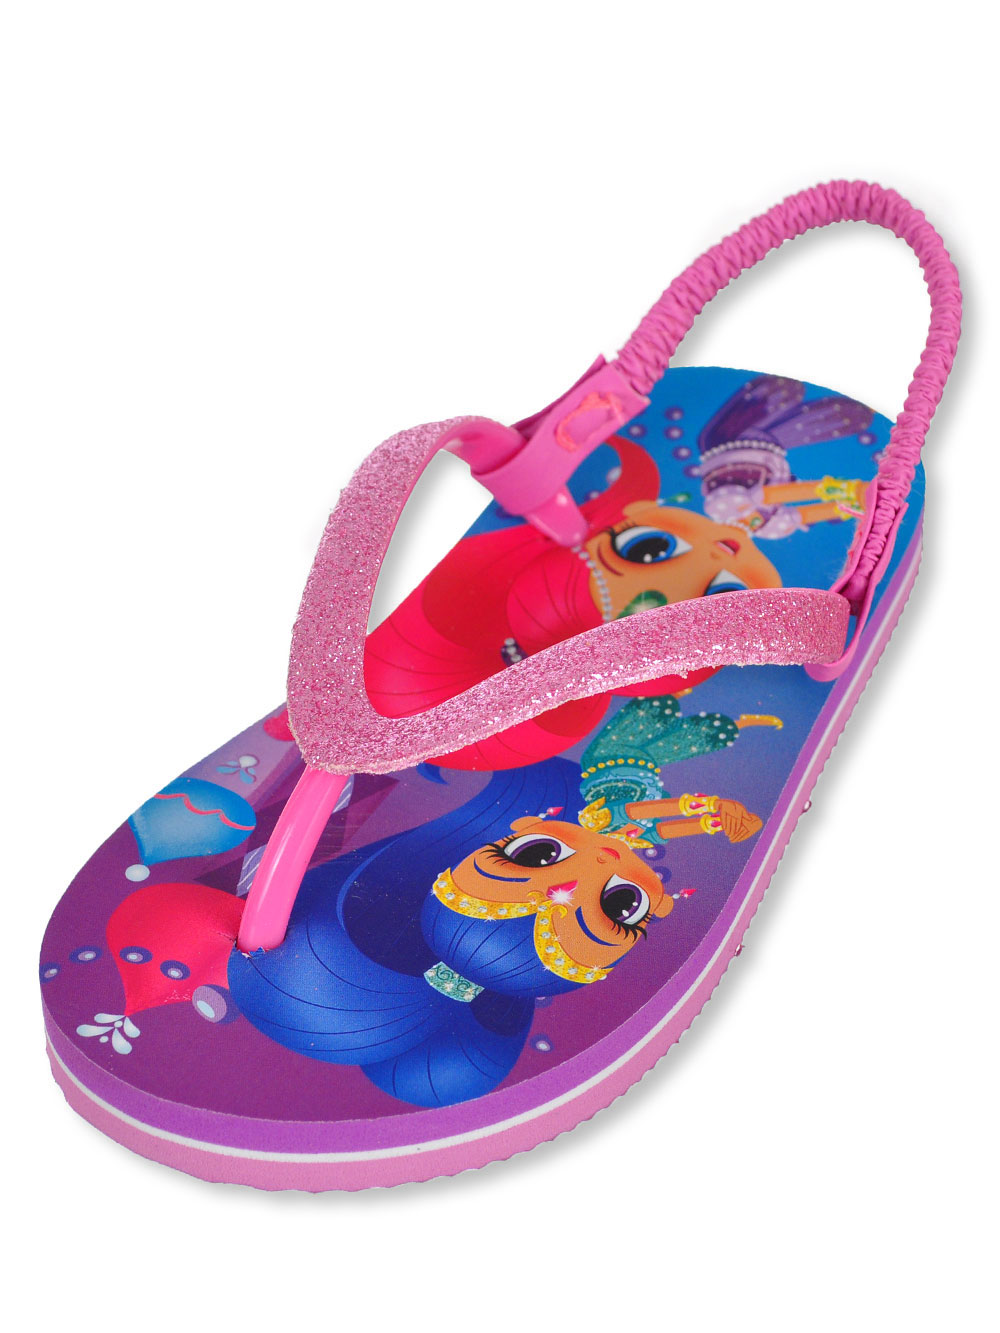 d698fe207f6f Girls  Sandals by Shimmer and Shine in Pink multi from Cookie s Kids